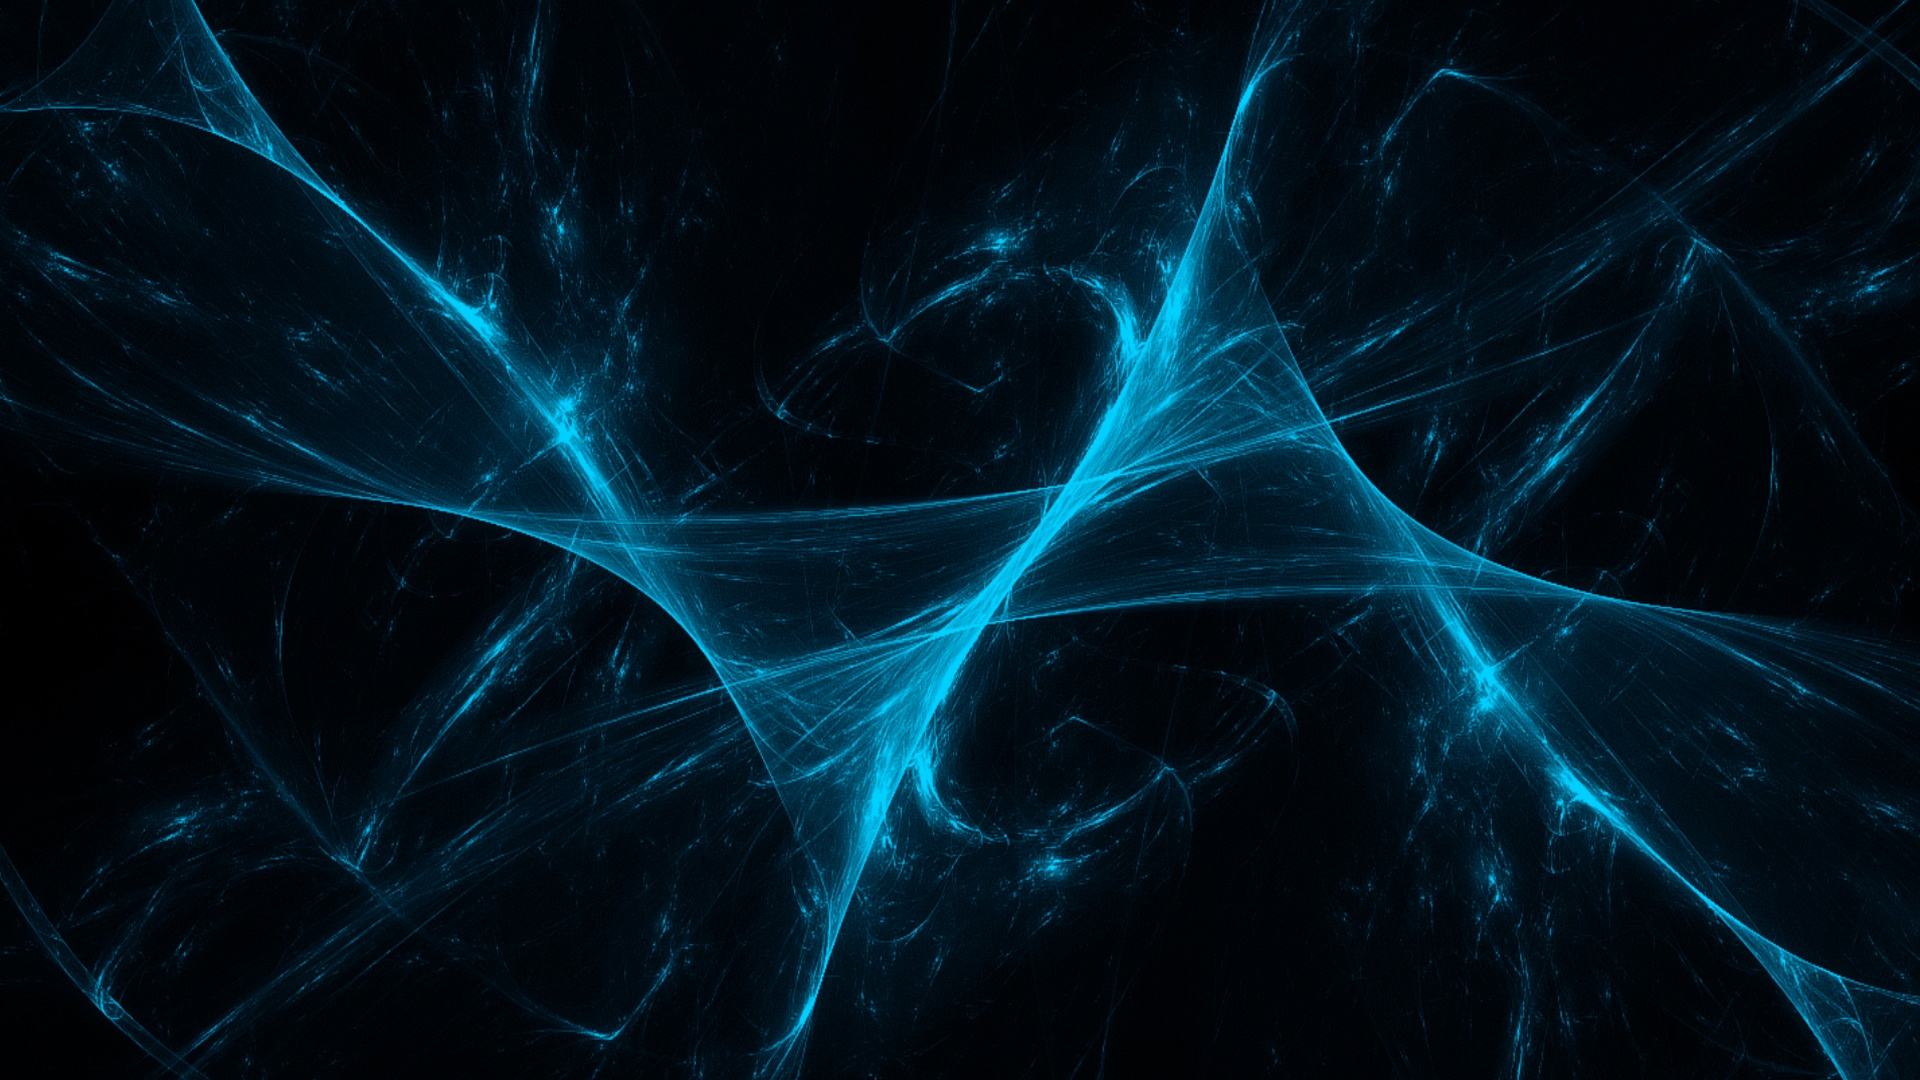 Abstract 1920x1080 - Wallpaper, High Definition, High ...